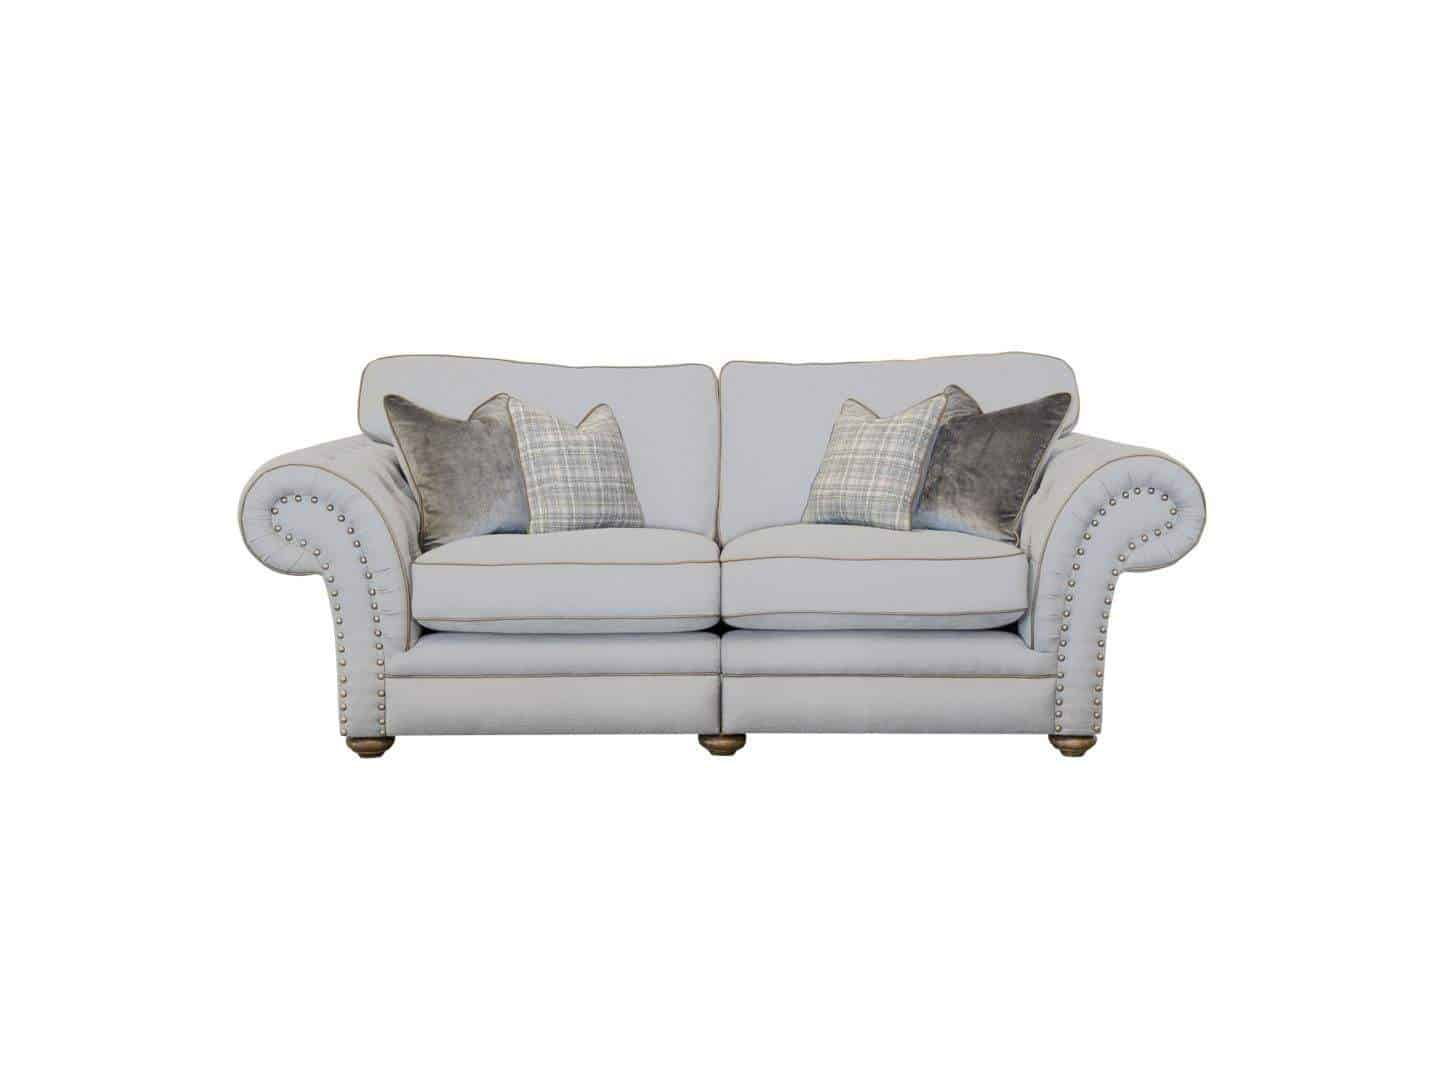 Remarkable Marlow 2 Seat Sofa Creativecarmelina Interior Chair Design Creativecarmelinacom